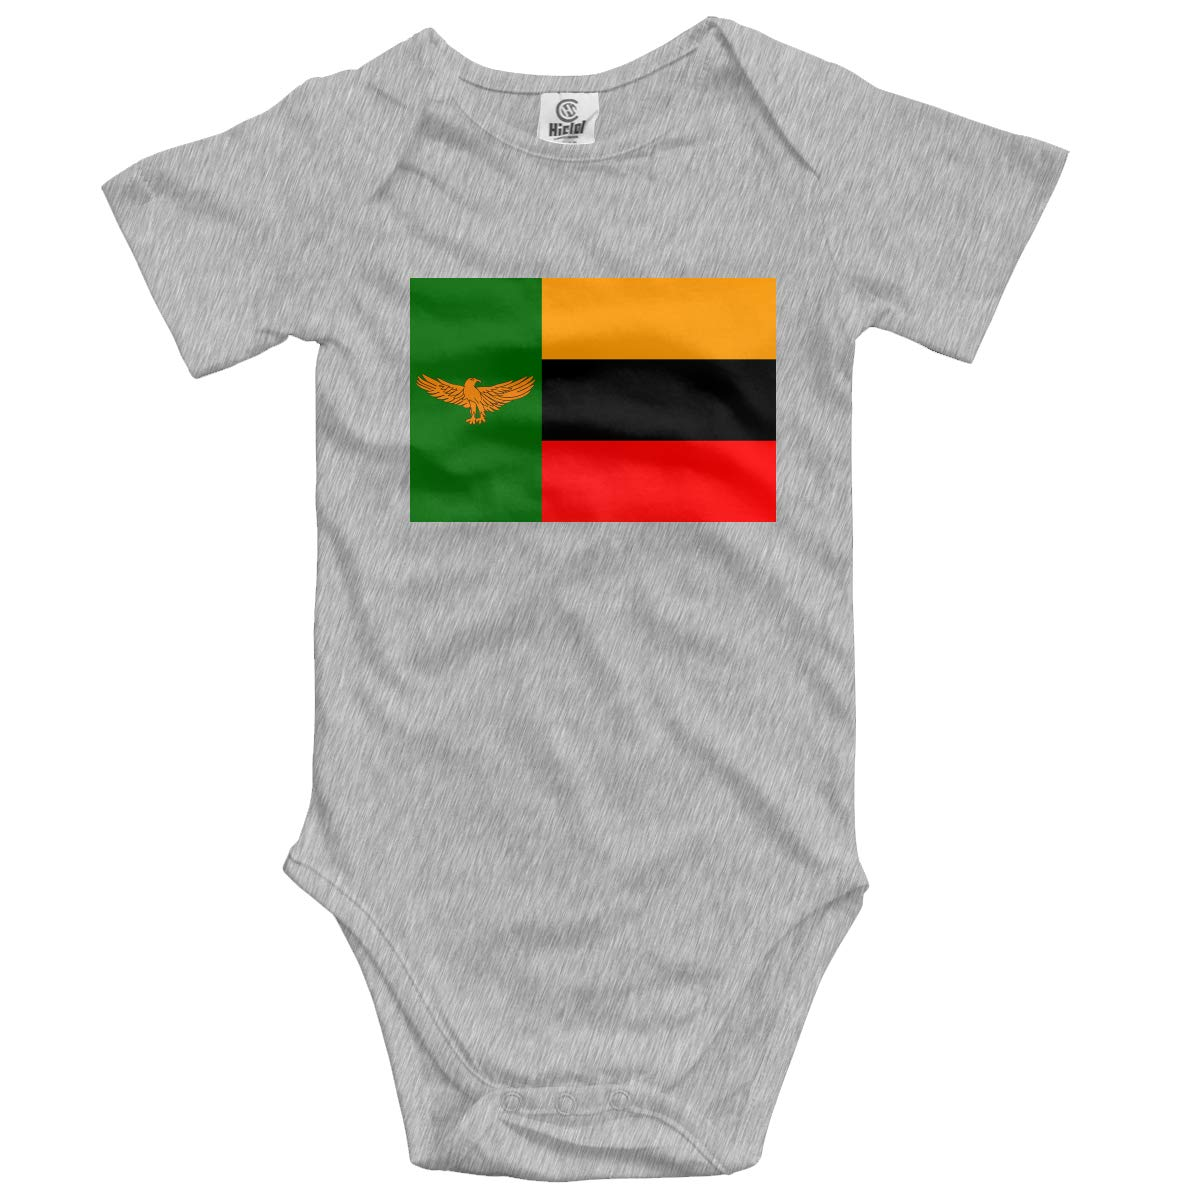 CUTEDWARF Baby Short-Sleeve Onesies Flag Zambia Bodysuit Baby Outfits